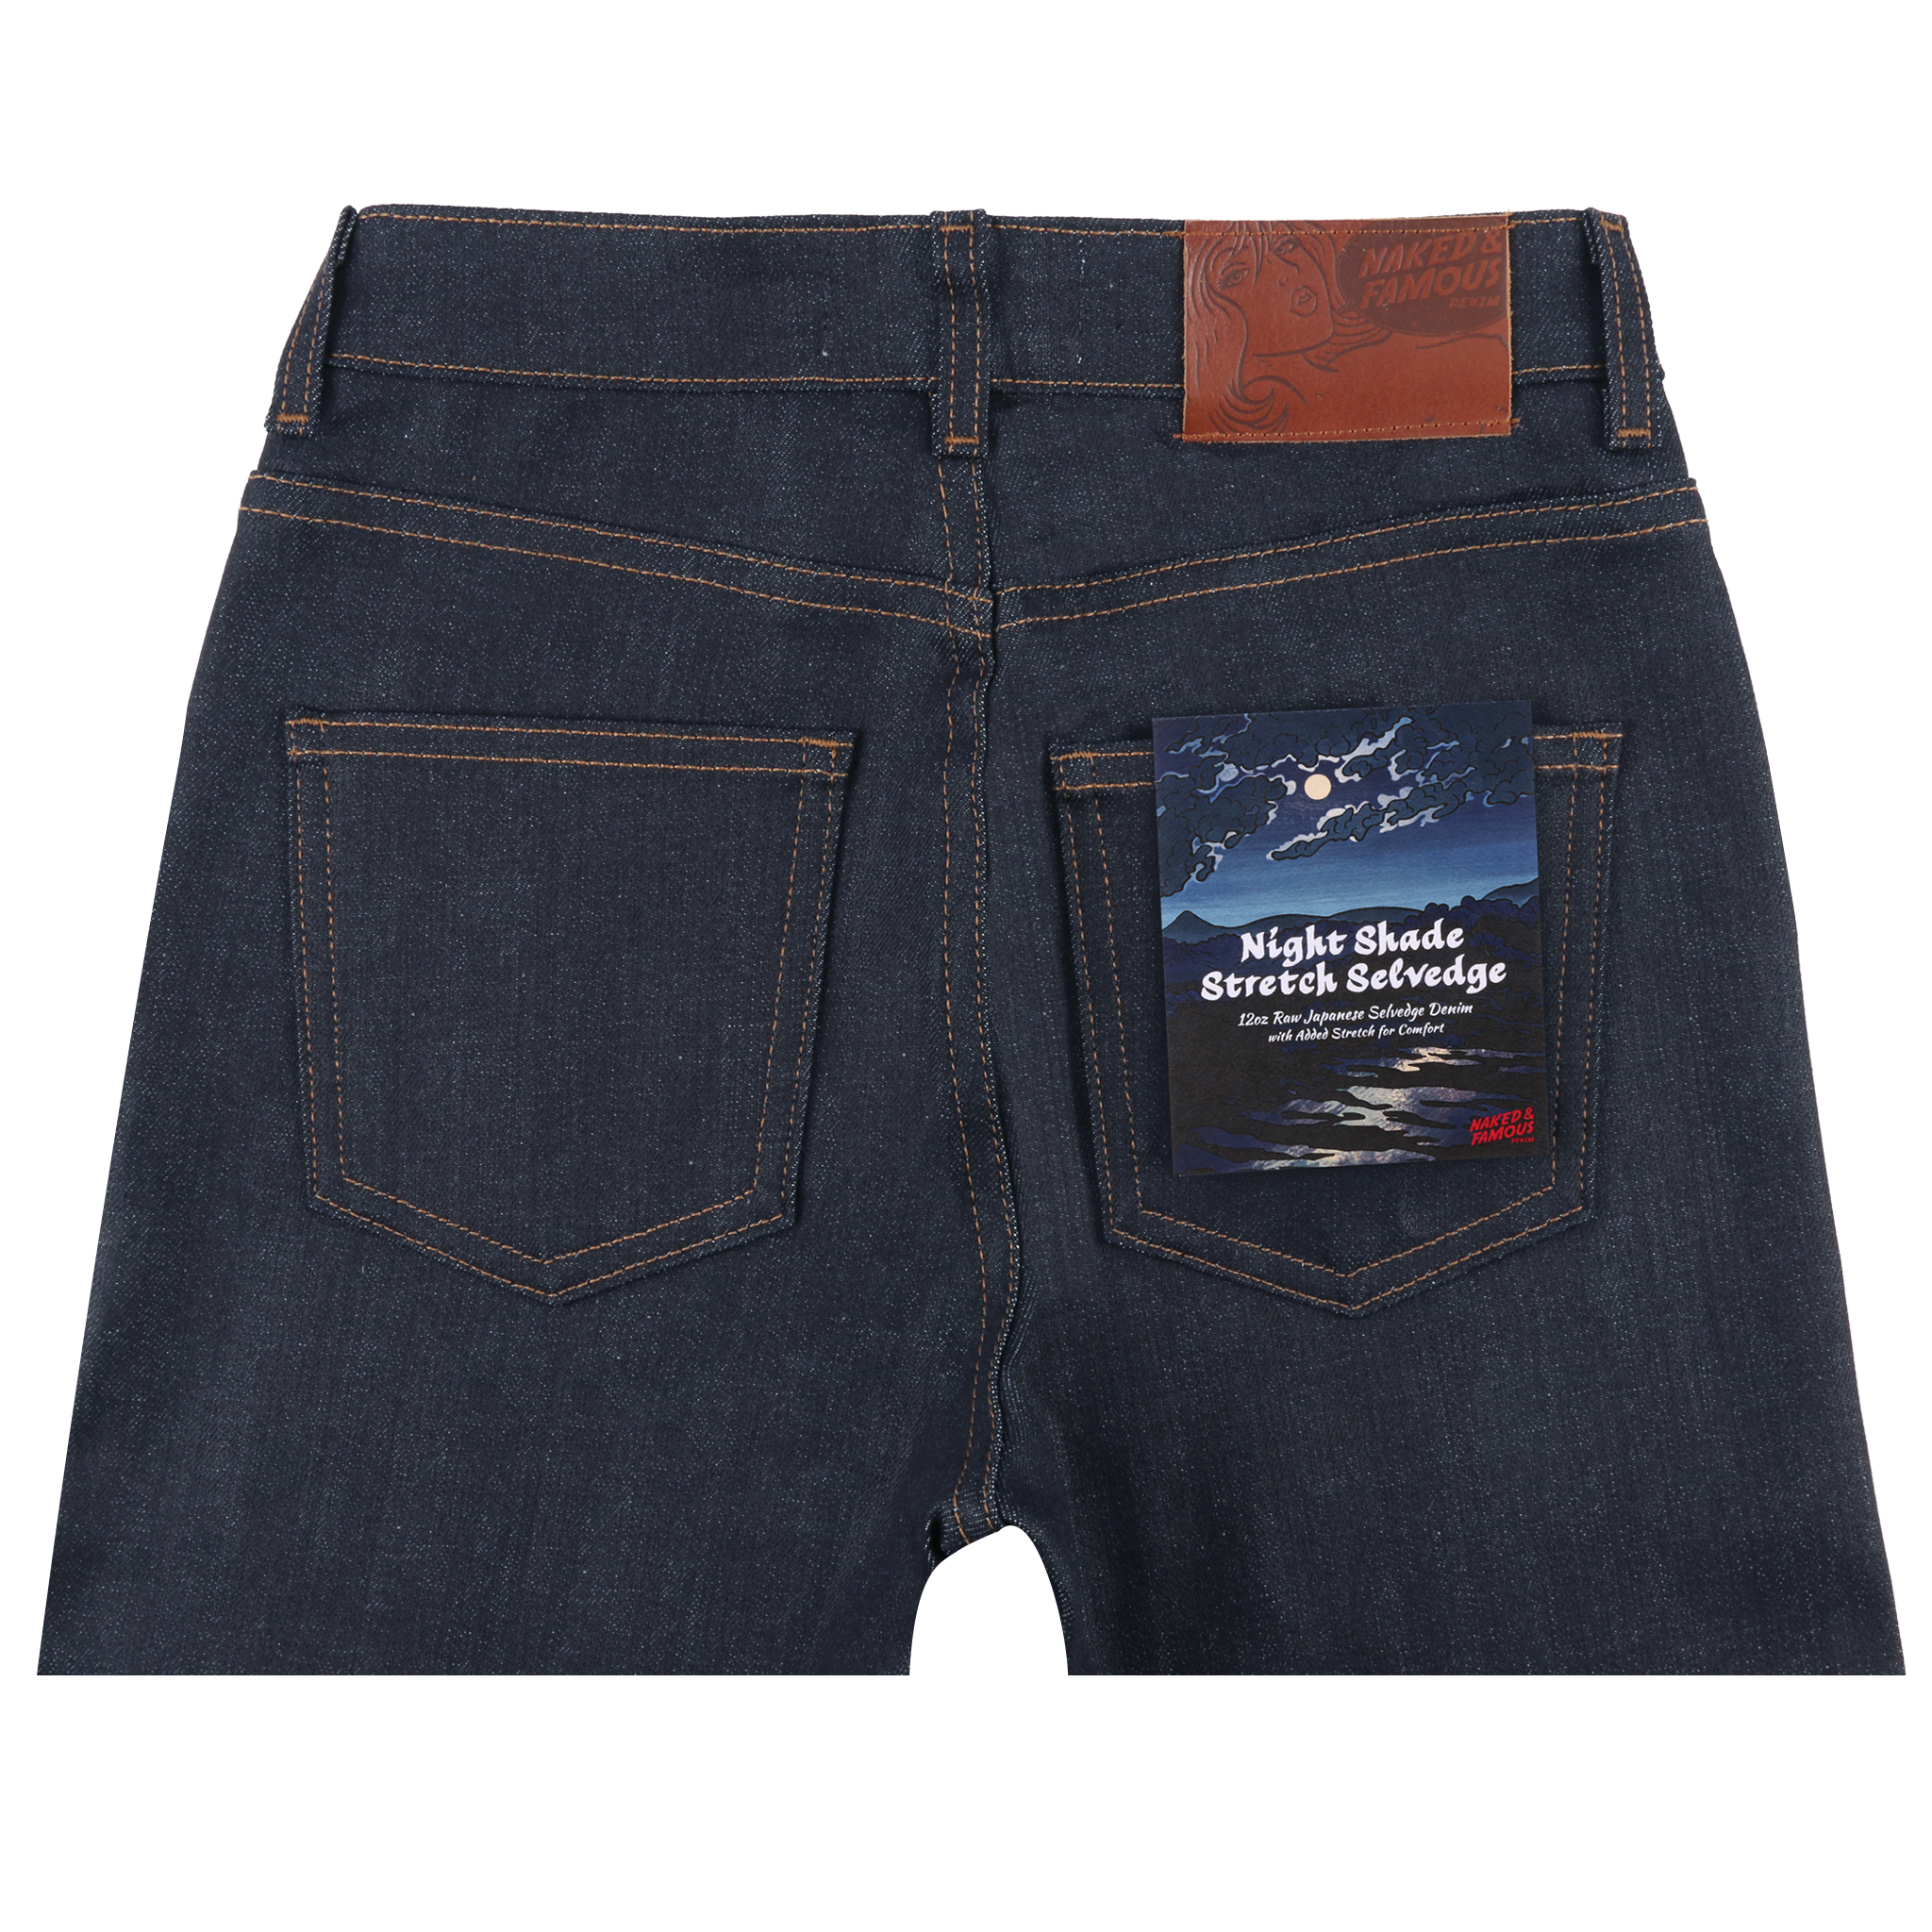 Women's Night Shade Stretch Selvedge Jeans back view